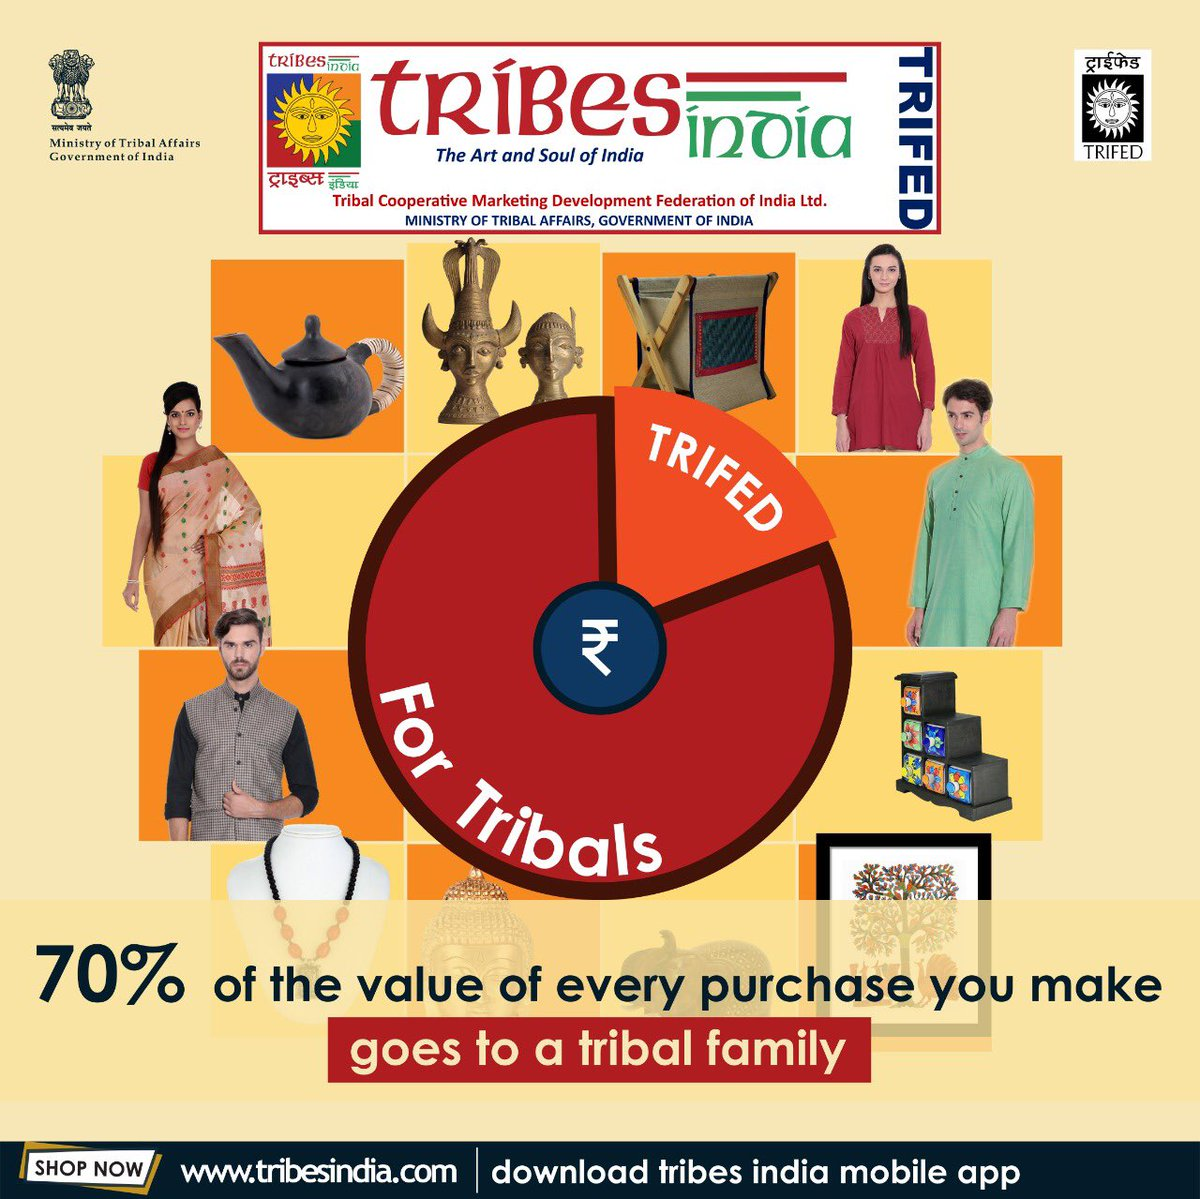 tribesindia hashtag on Twitter